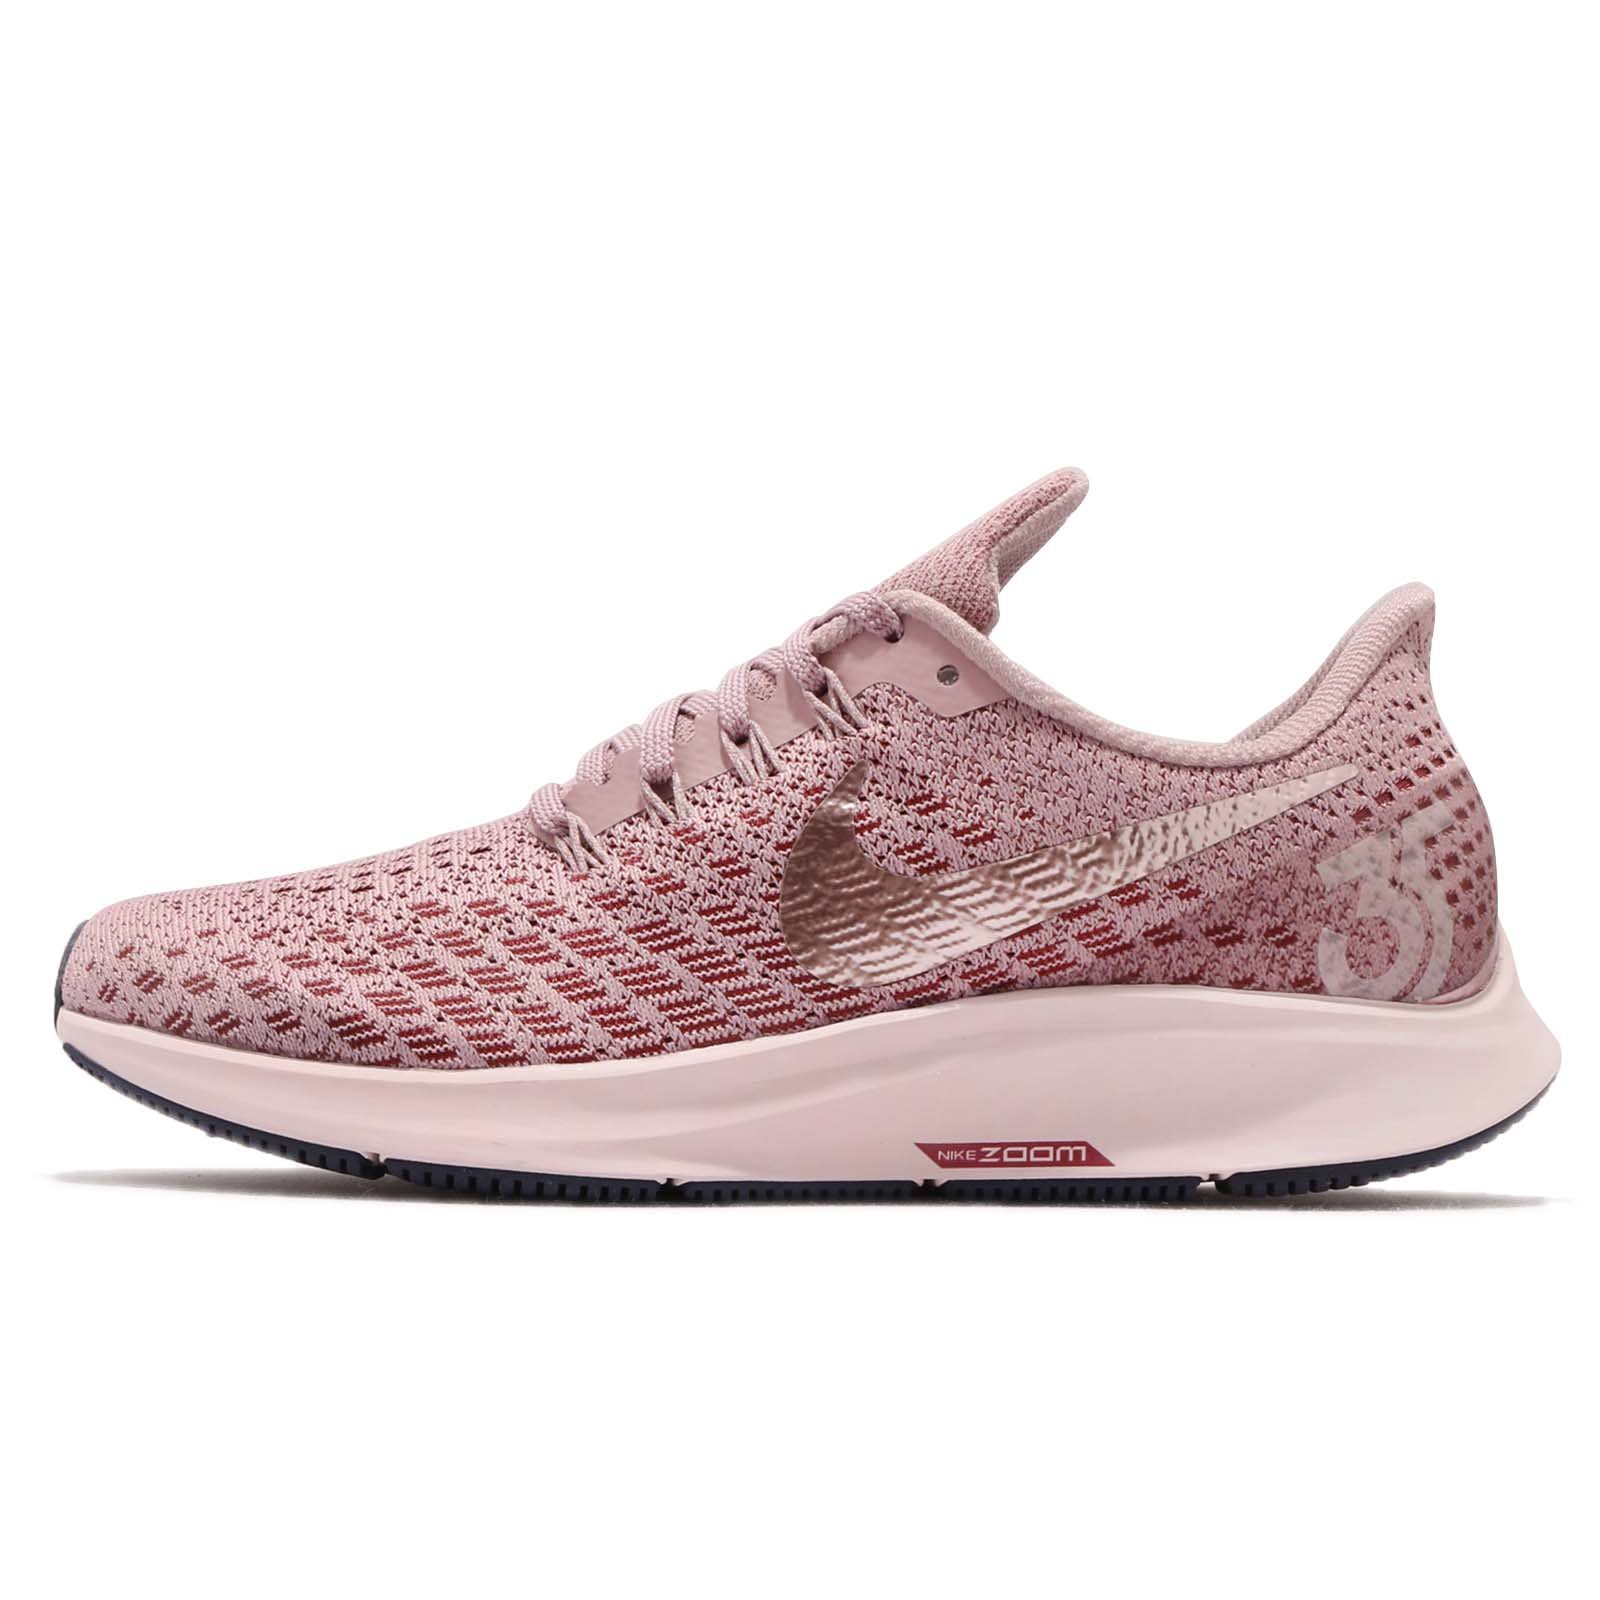 save off fc6d8 0e5f6 Galleon - Nike Women's Air Zoom Pegasus 35 Elemental Rose/Barely Rose-Vintage  Wine 9.0